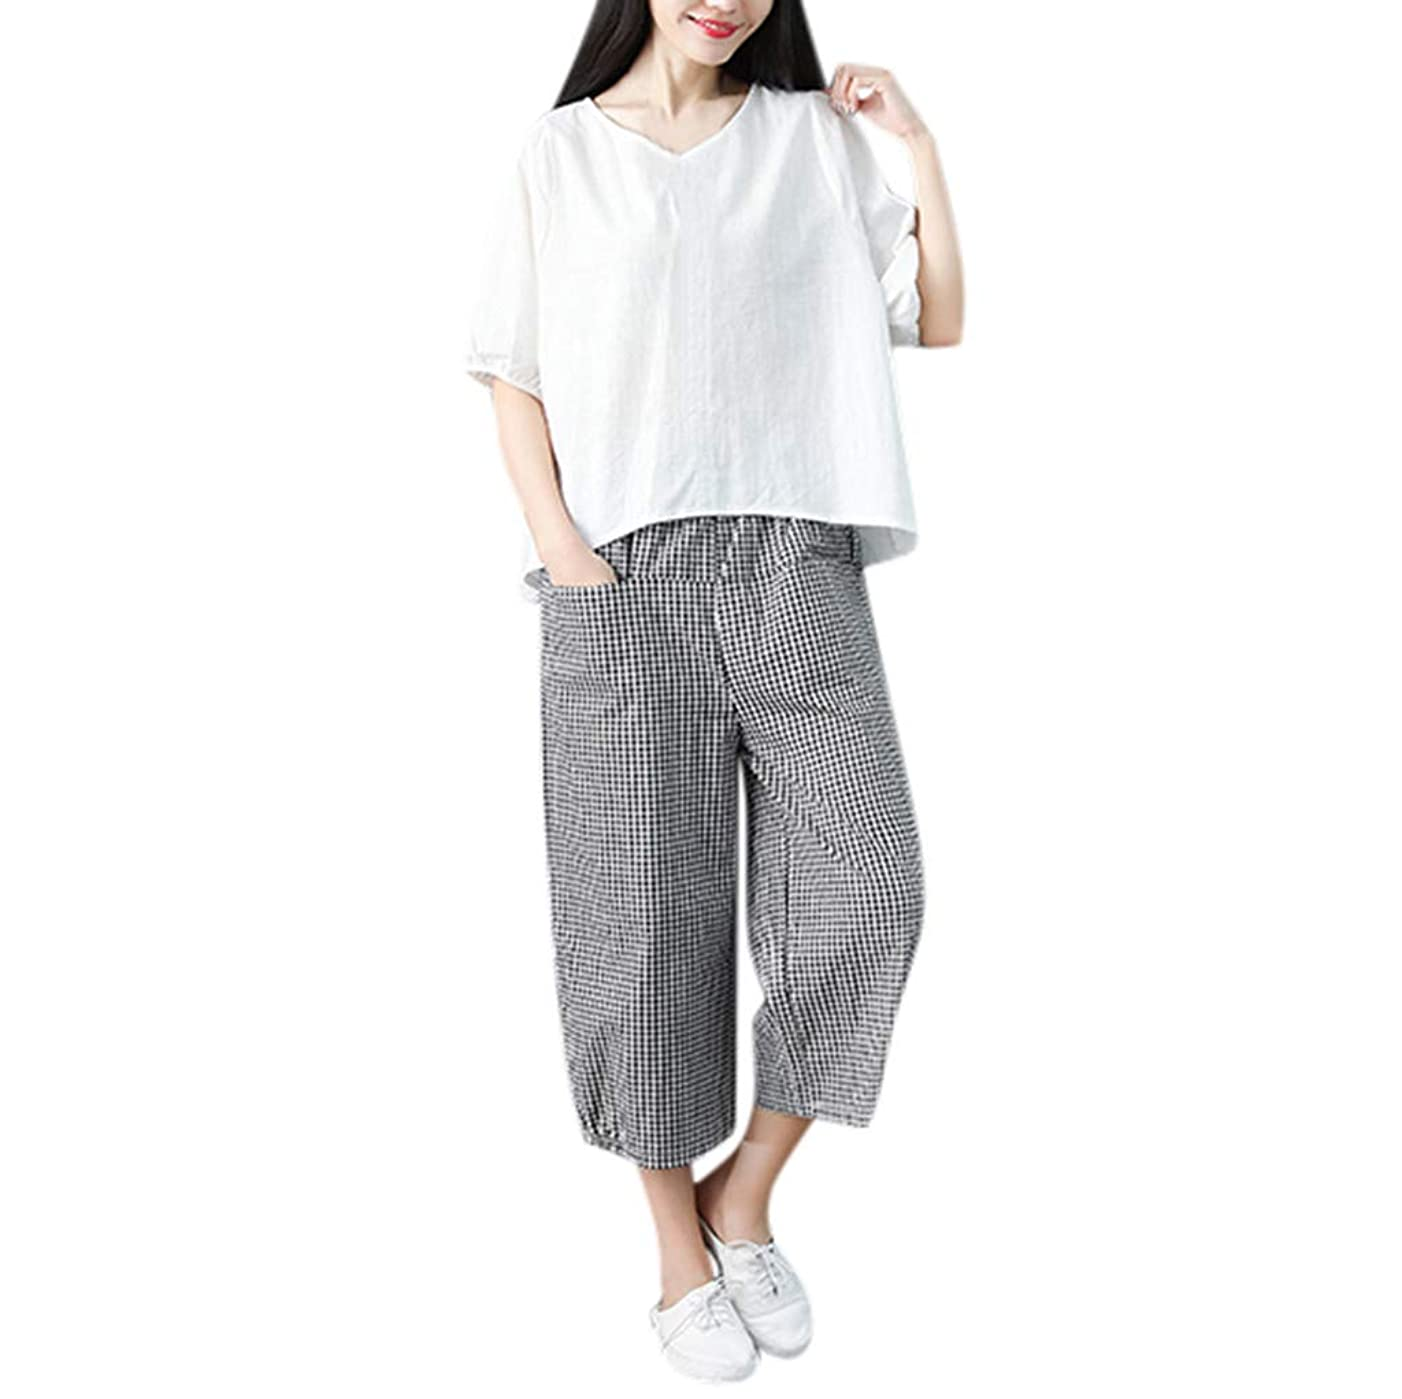 Women's Casual Cotton Linen 2 Pieces Outfit Short Sleeve Round Neck T Shirt Loose Tops Comfy Breathable Lattice Palazzo Cropped Pants with Pockets